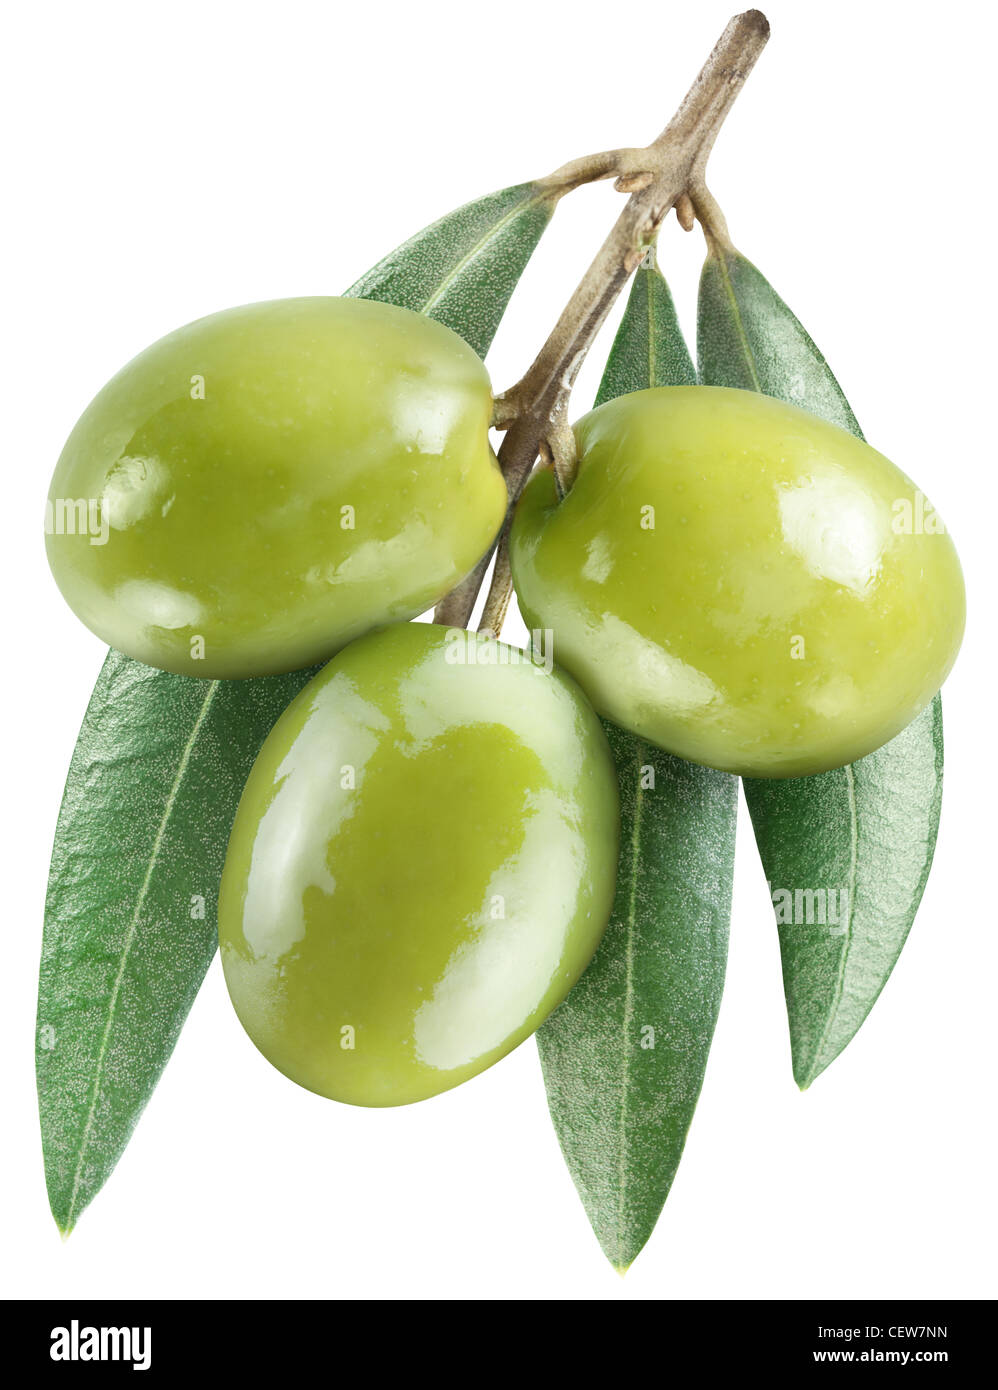 Olives with leaves on a white background. File contains the path to cut. - Stock Image